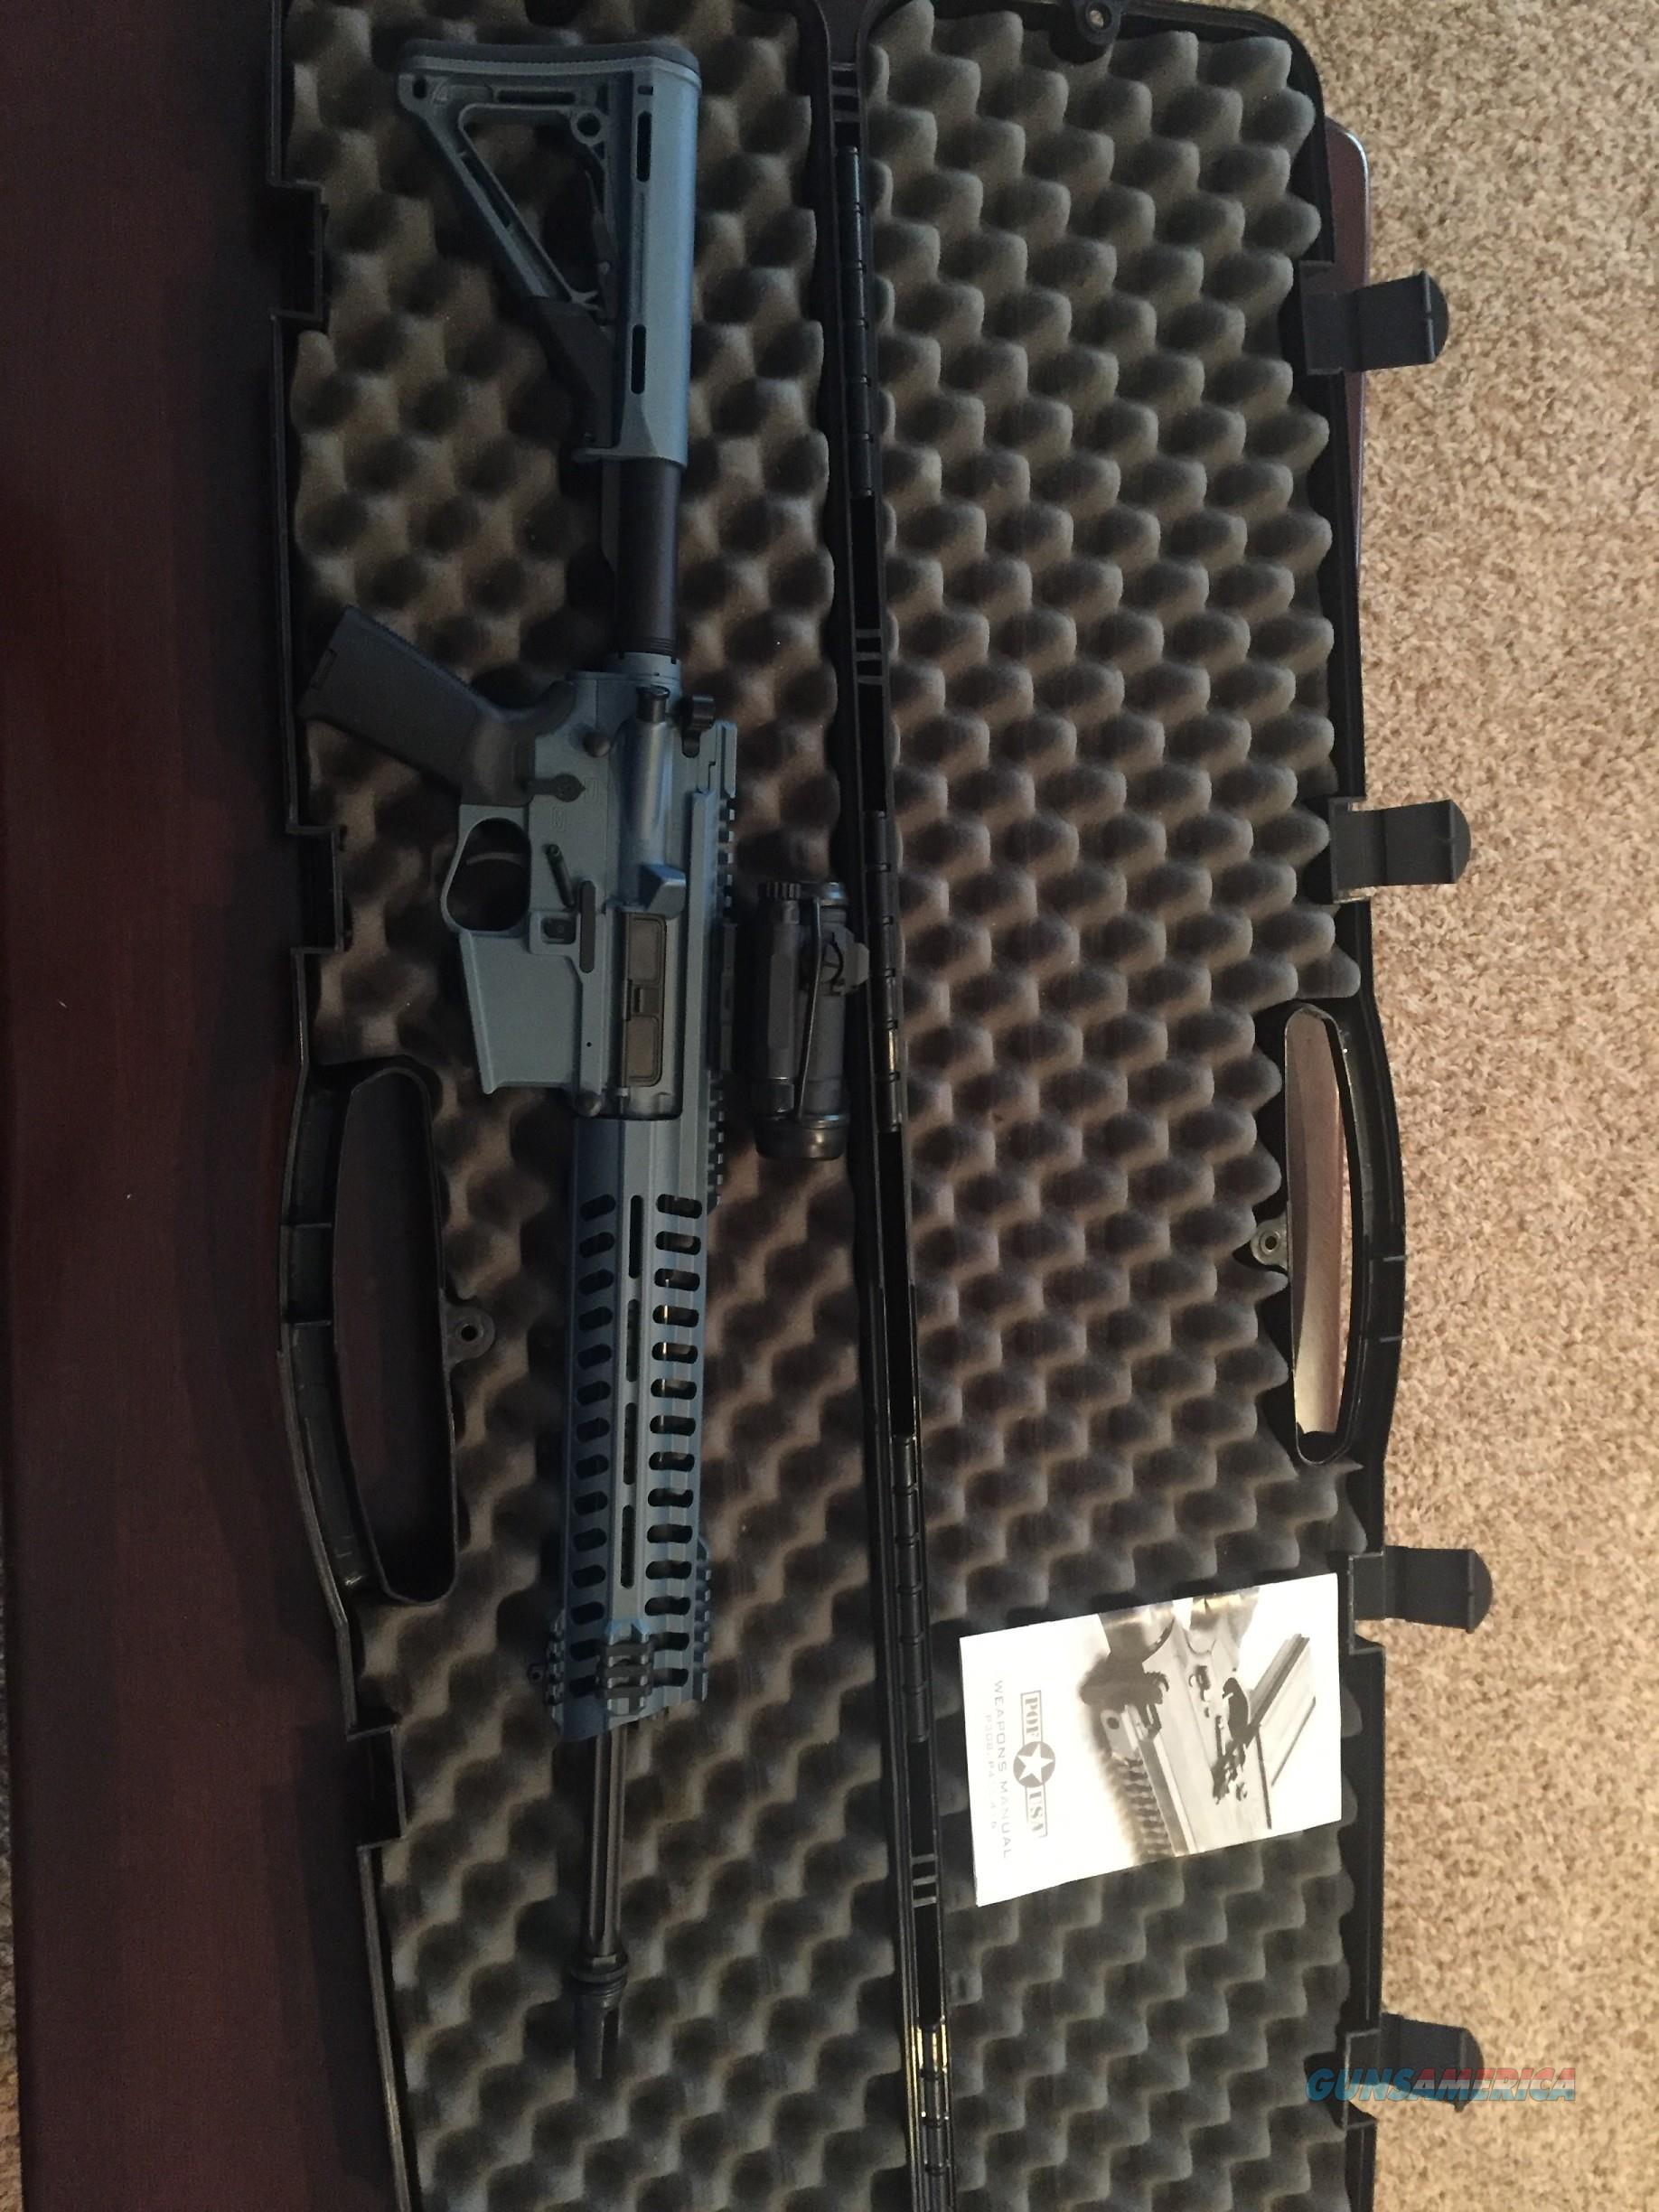 POF P415 with Aimpoint Pro Comp M4S optic  Guns > Rifles > Patriot Ordnance Factory - POF USA > Complete Rifles